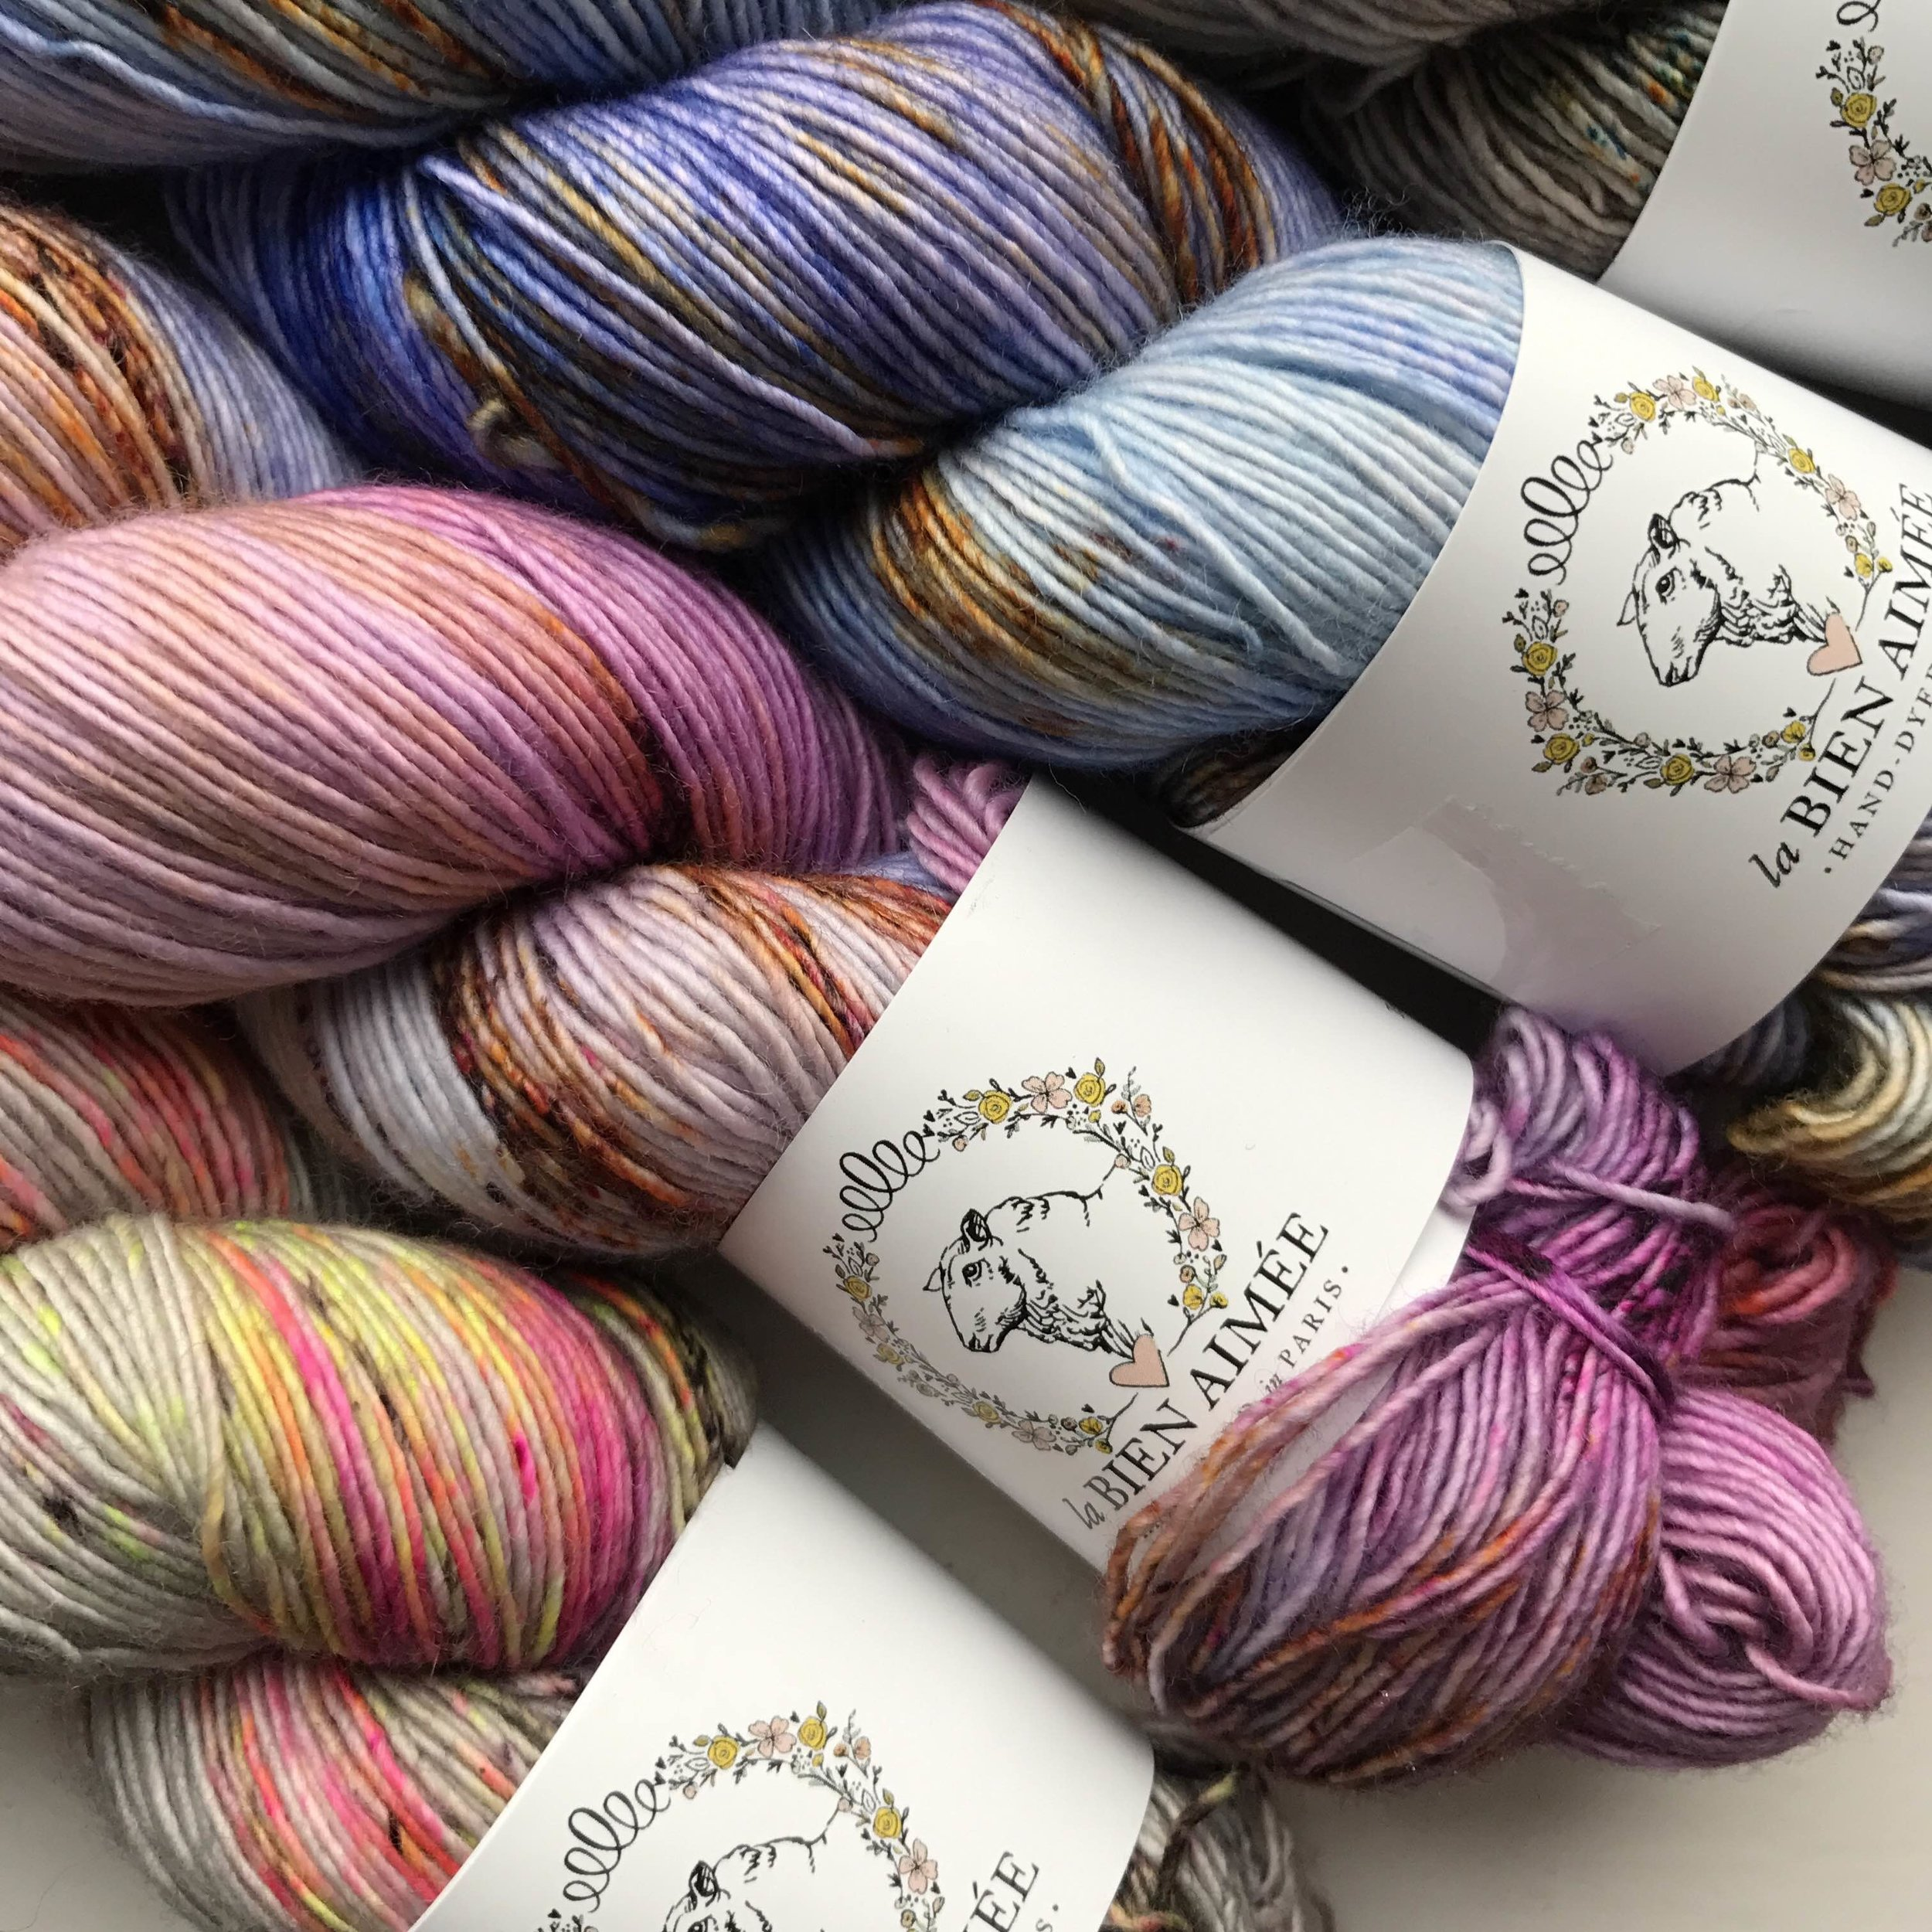 Luscious La Bien Aimée Merino Singles just waiting for you on the A Yarn Story stand at the Yarnporium.